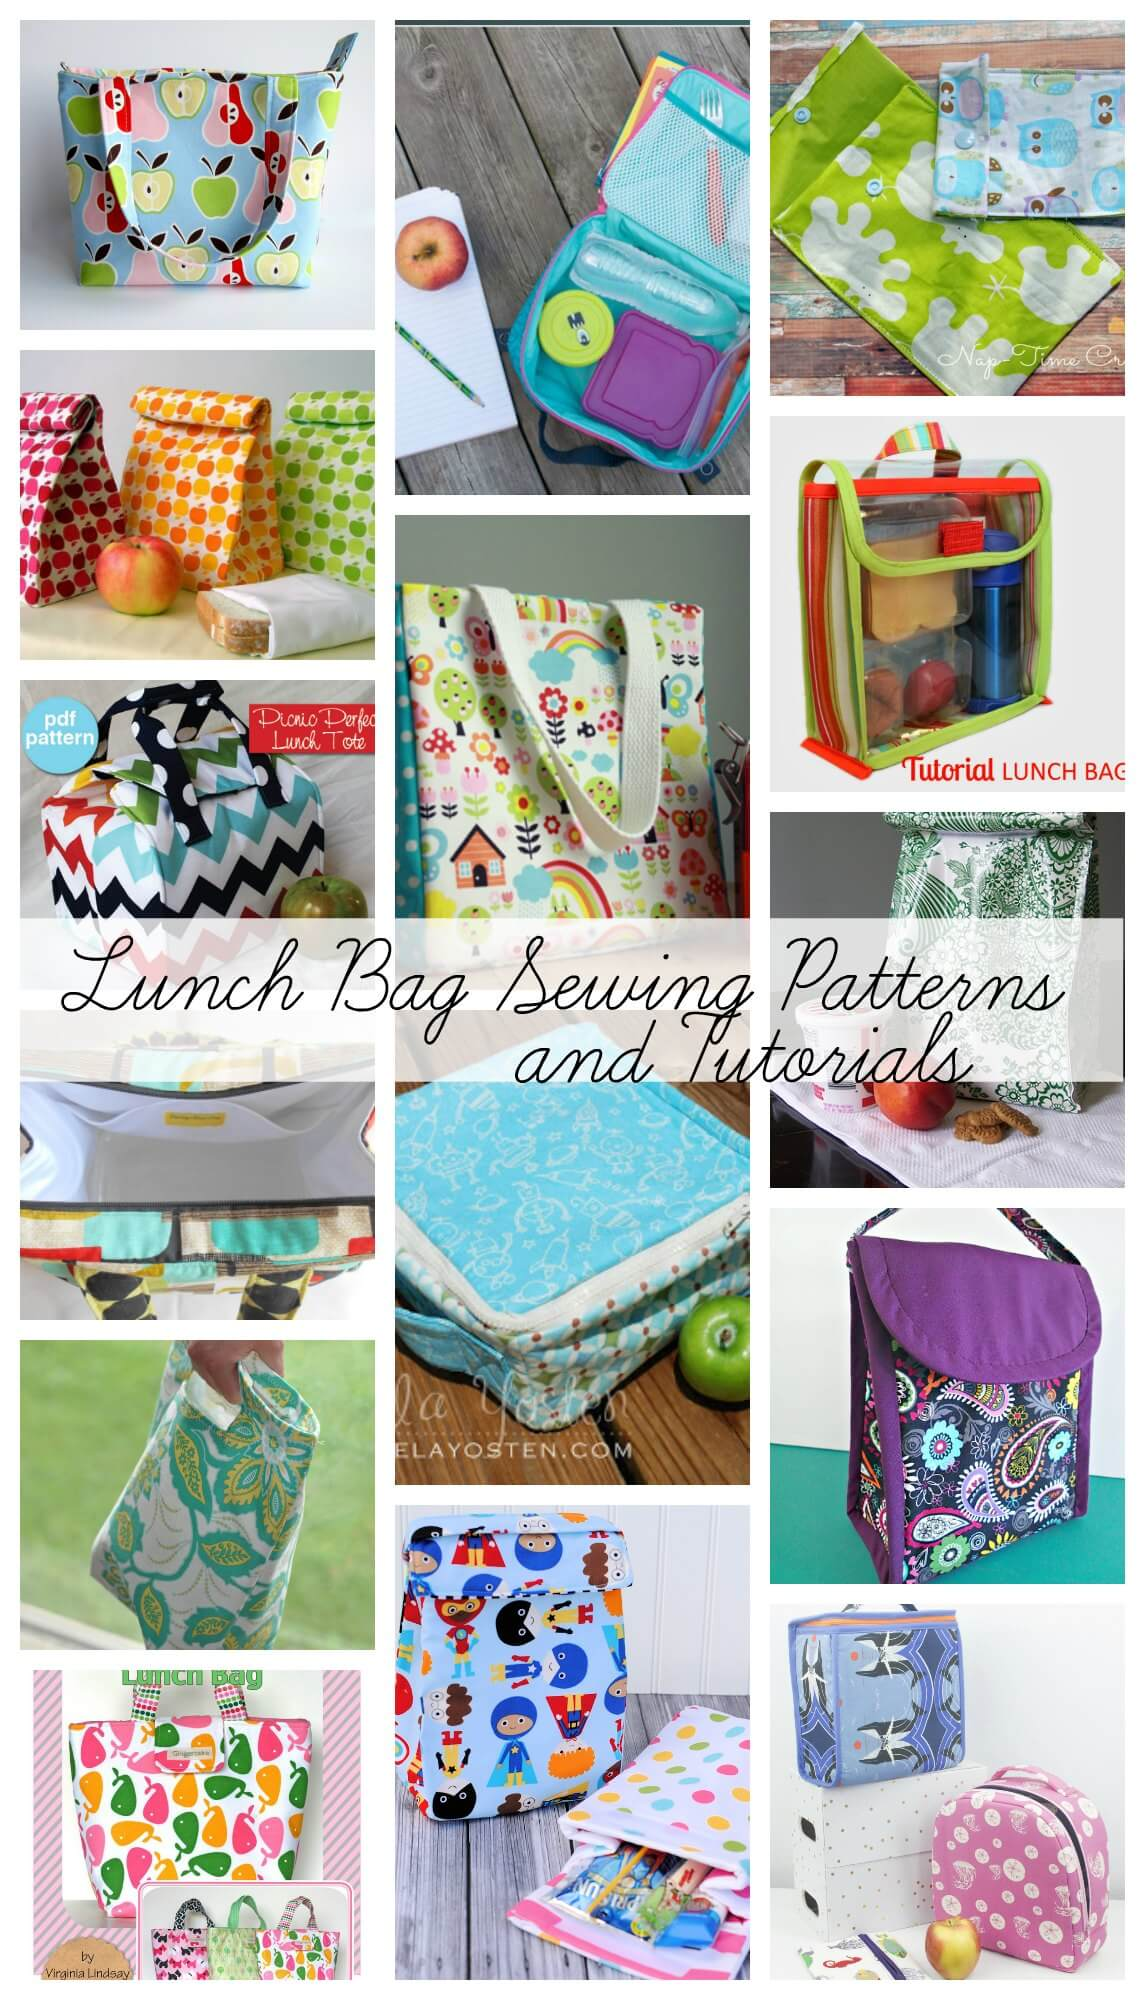 lunch bag sewing patterns and tutorials from Life Sew Savory